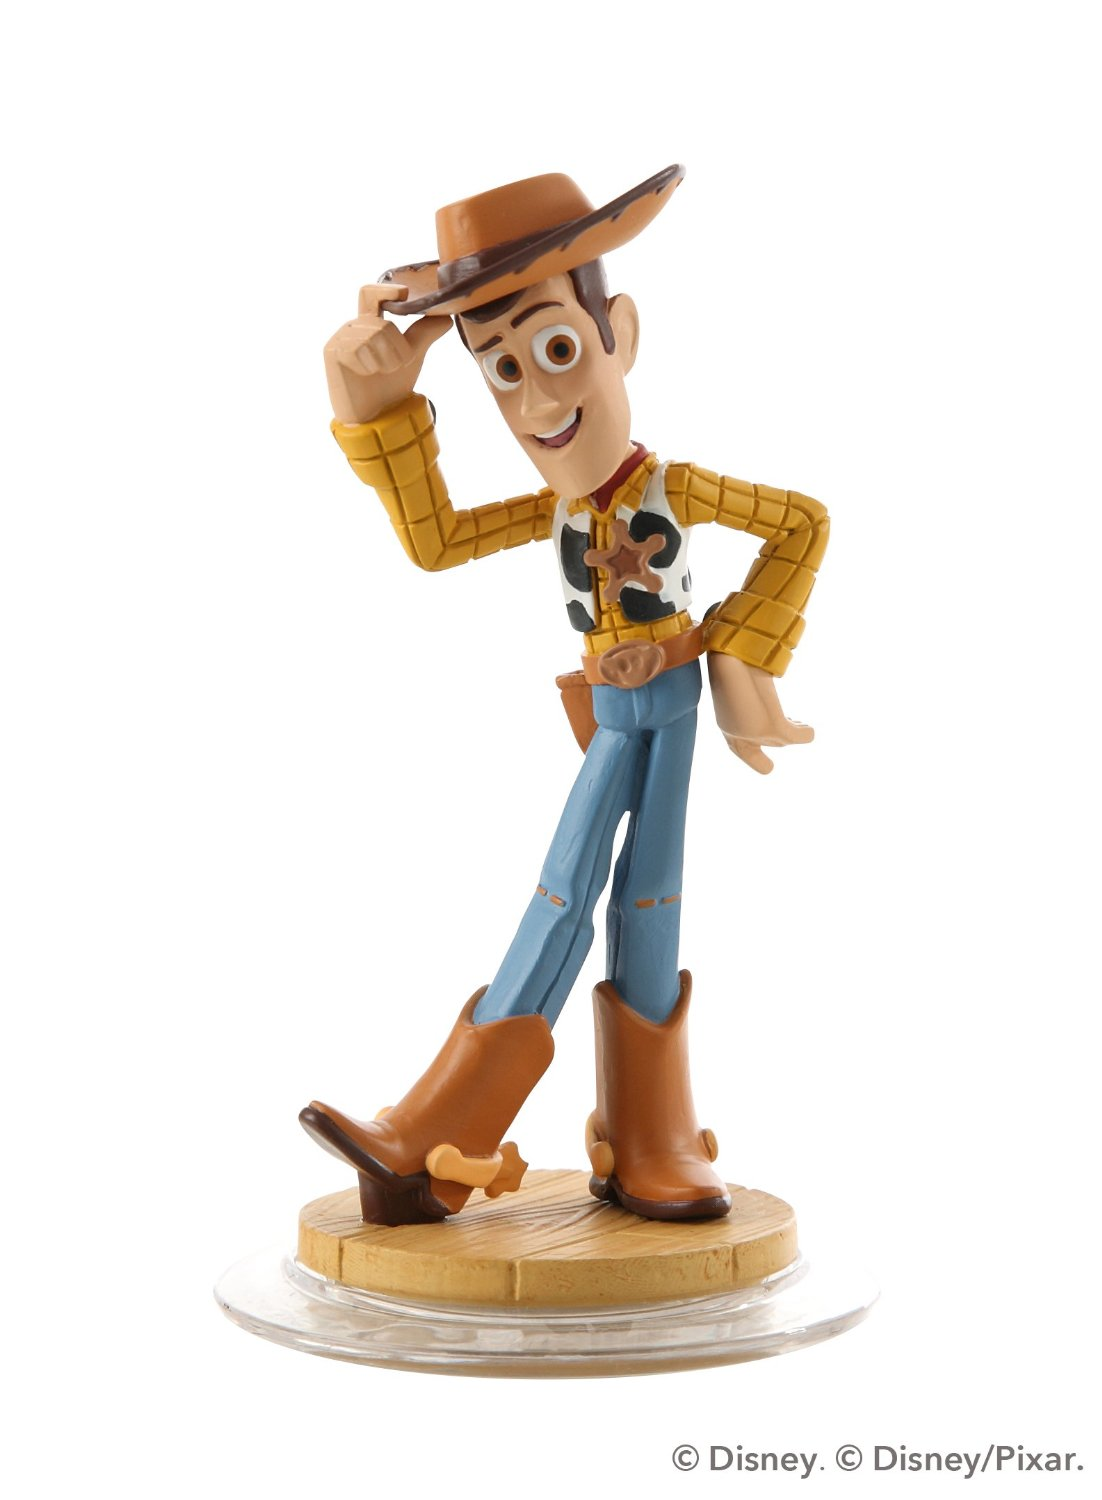 FIG: DISNEY INFINITY 1.0: WOODY (USED)